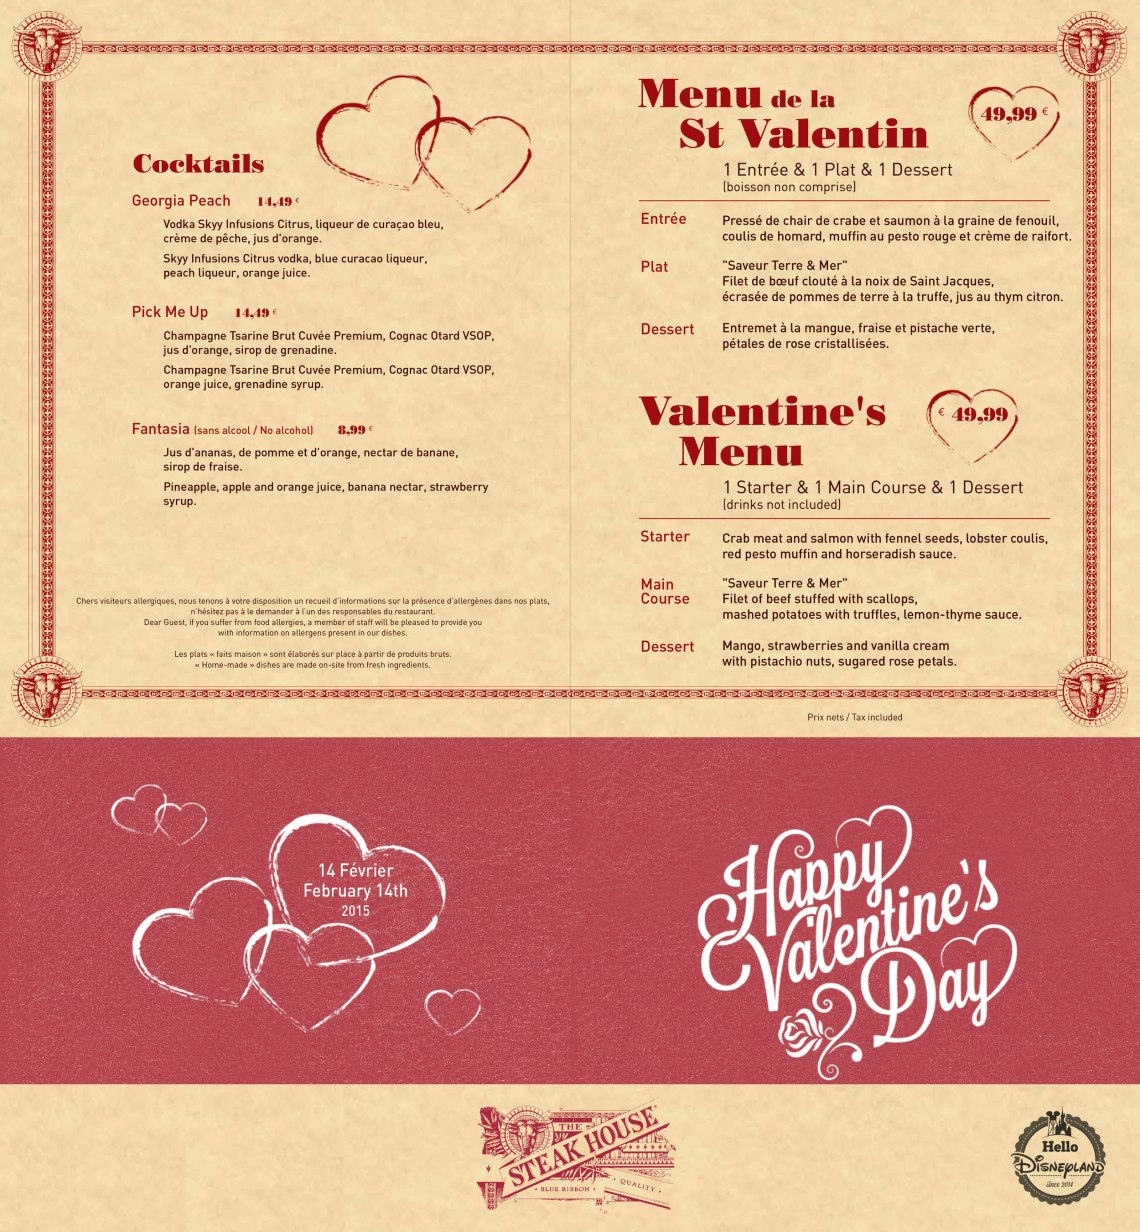 Menu-St-Valentin-Steakhouse